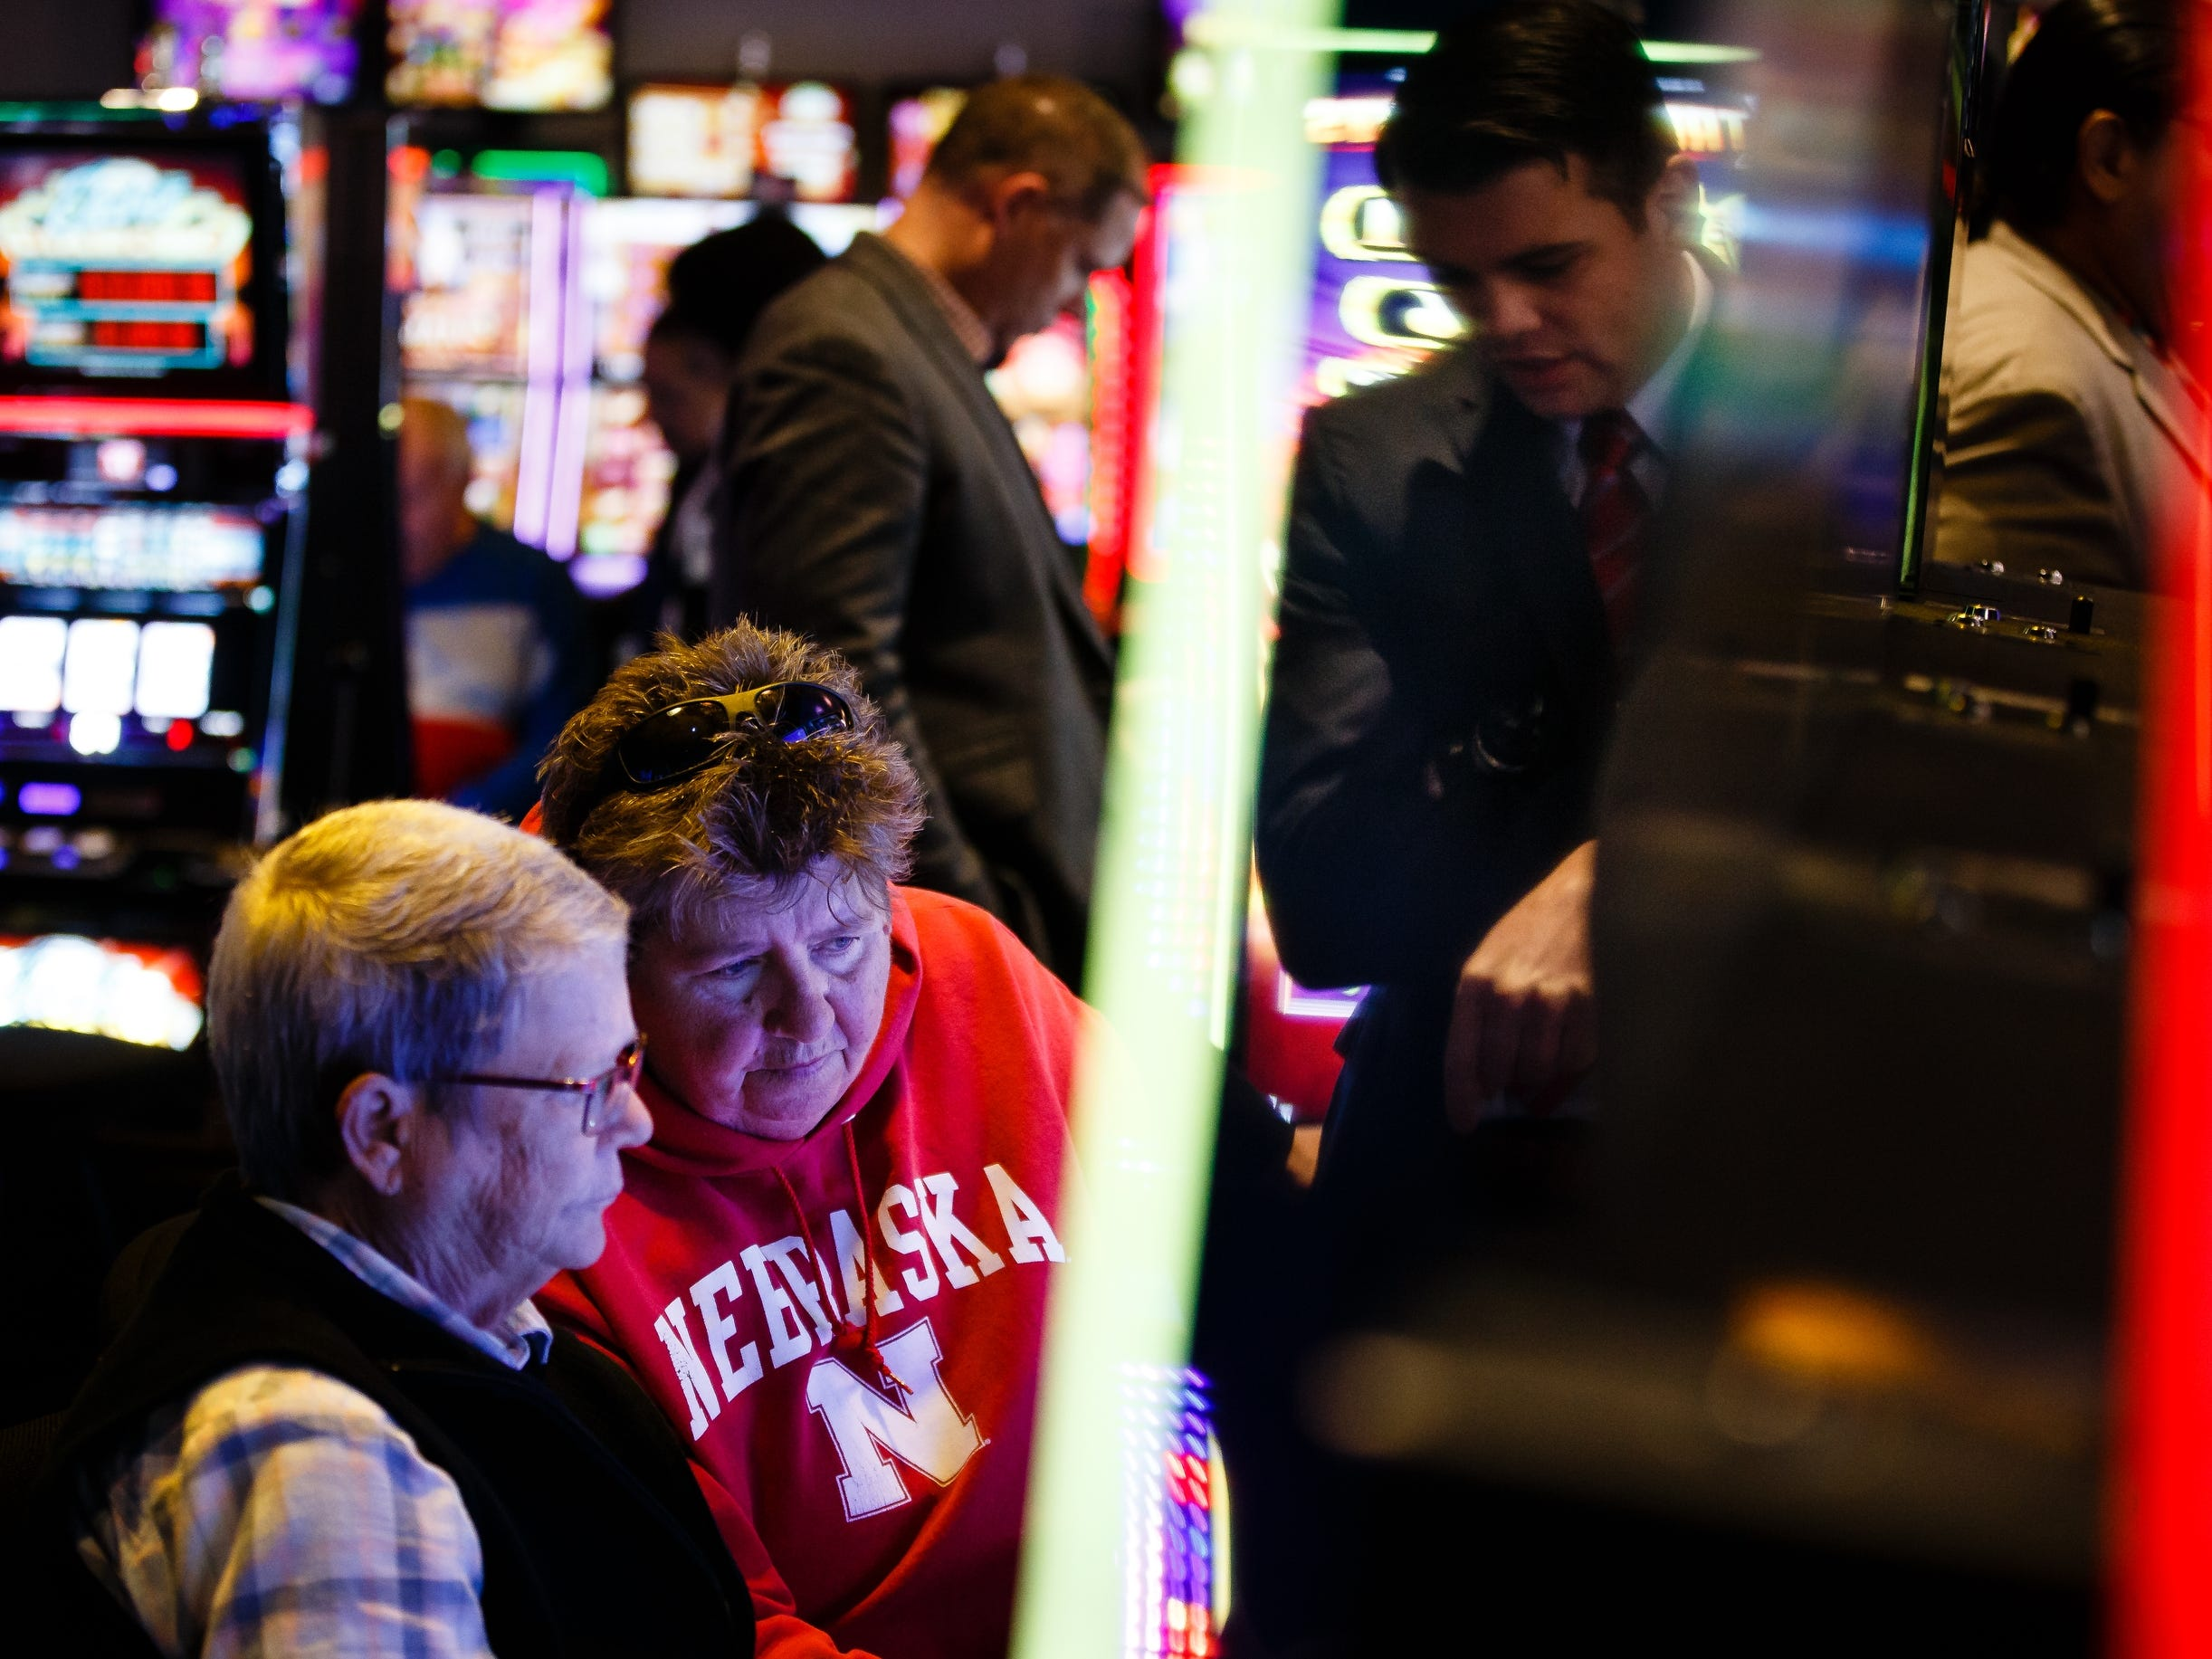 Pam Brown, top, and Linda Buckley, bottom, both of Omaha play a slot machine during the grand opening of The Ponca Tribe of Nebraska's Prairie Flower Casino on Thursday, Nov. 1, 2018, in Carter Lake. Both Iowa and Nebraska officials have tried to block the casino in federal court Ð Iowa because of competition with other Iowa casinos and Nebraska because the casino sits just miles away from Omaha where gambling is illegal.